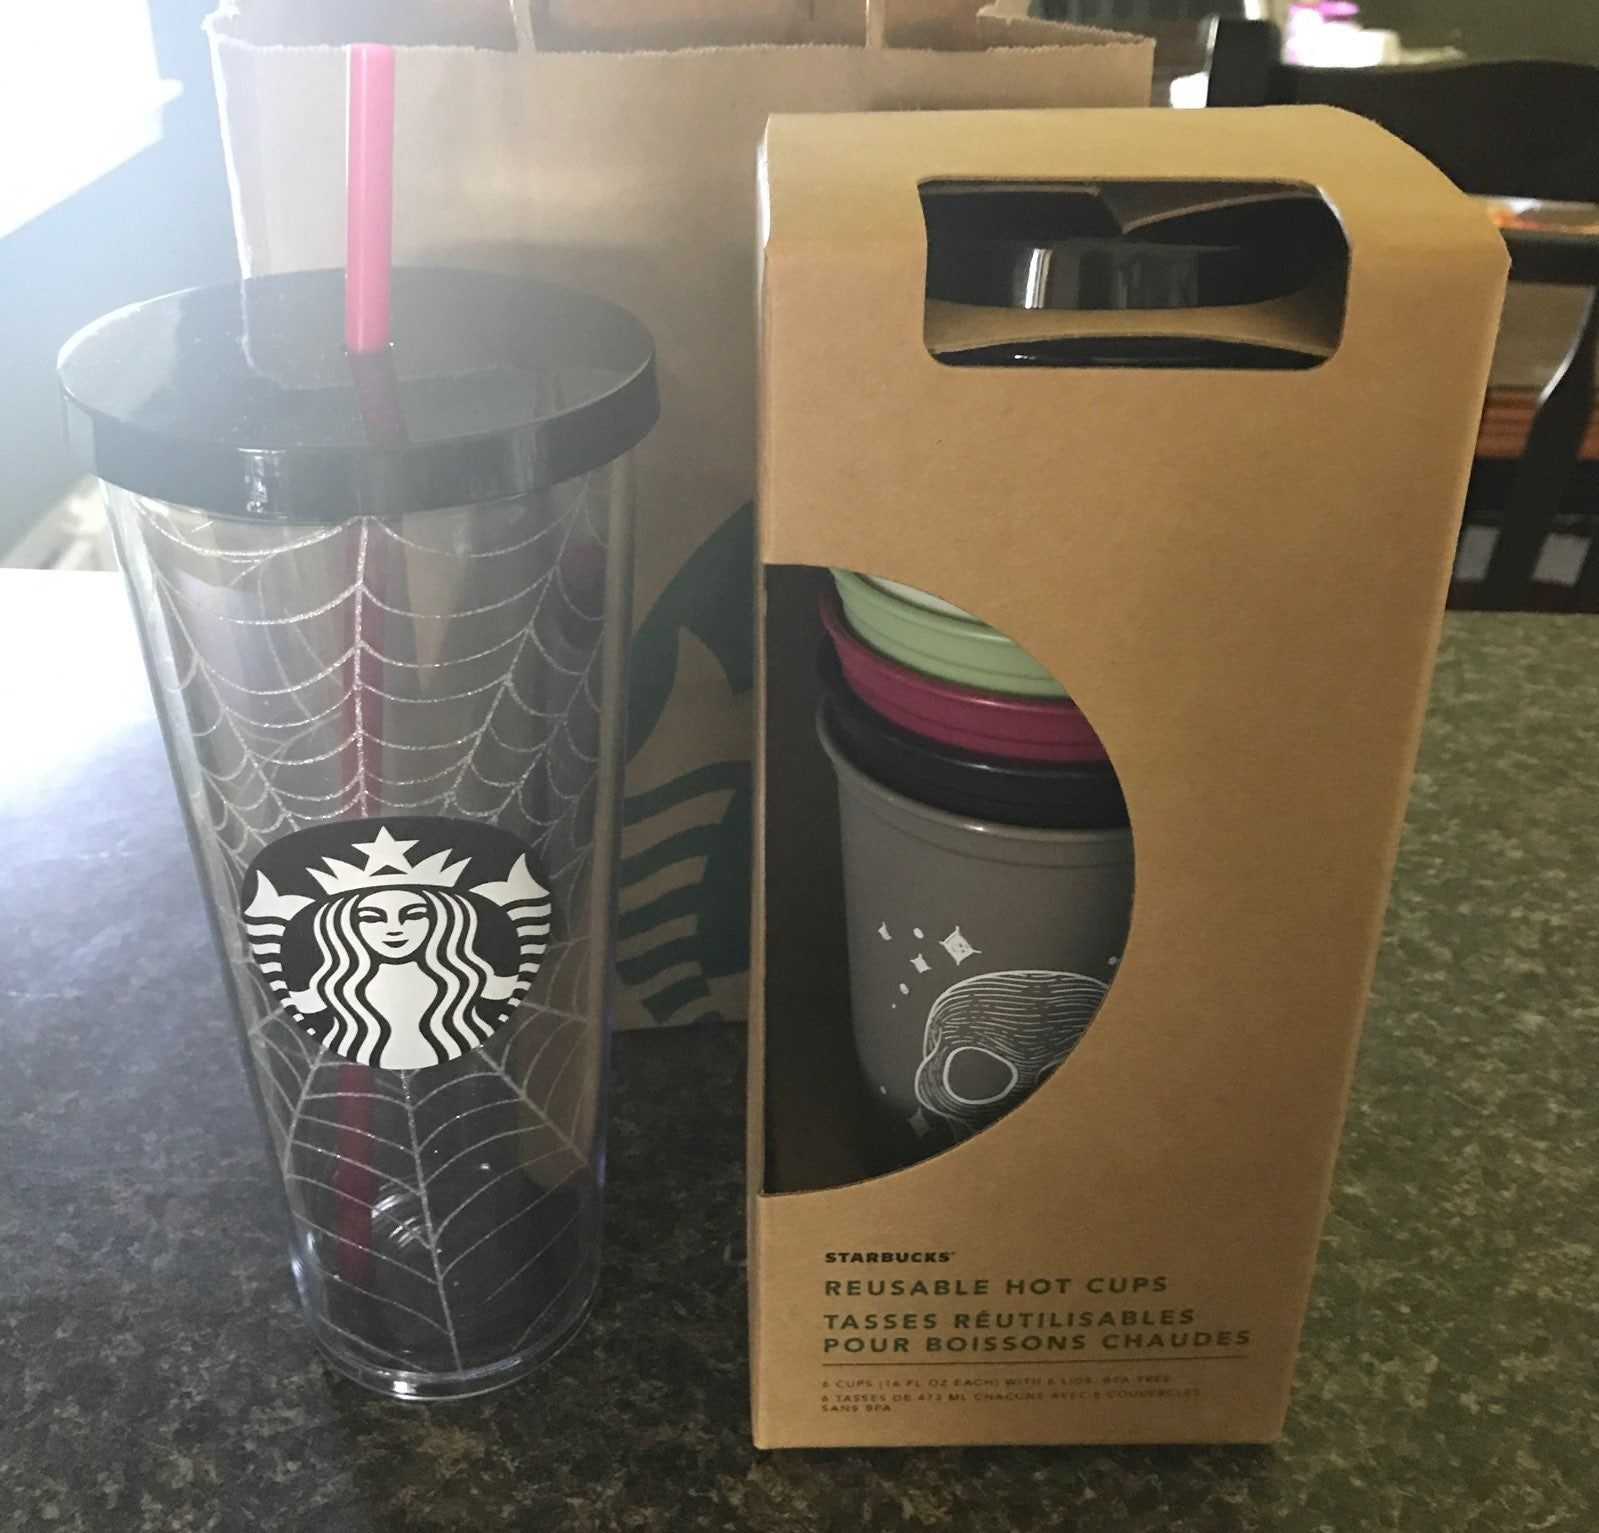 Country living editors select each product featured. TAKING OFFERS! RARE LIMITED 6 STARBUCKS HOT CUPS & 1 VENTI SPIDER WEB TUMBLER. These are brand ...